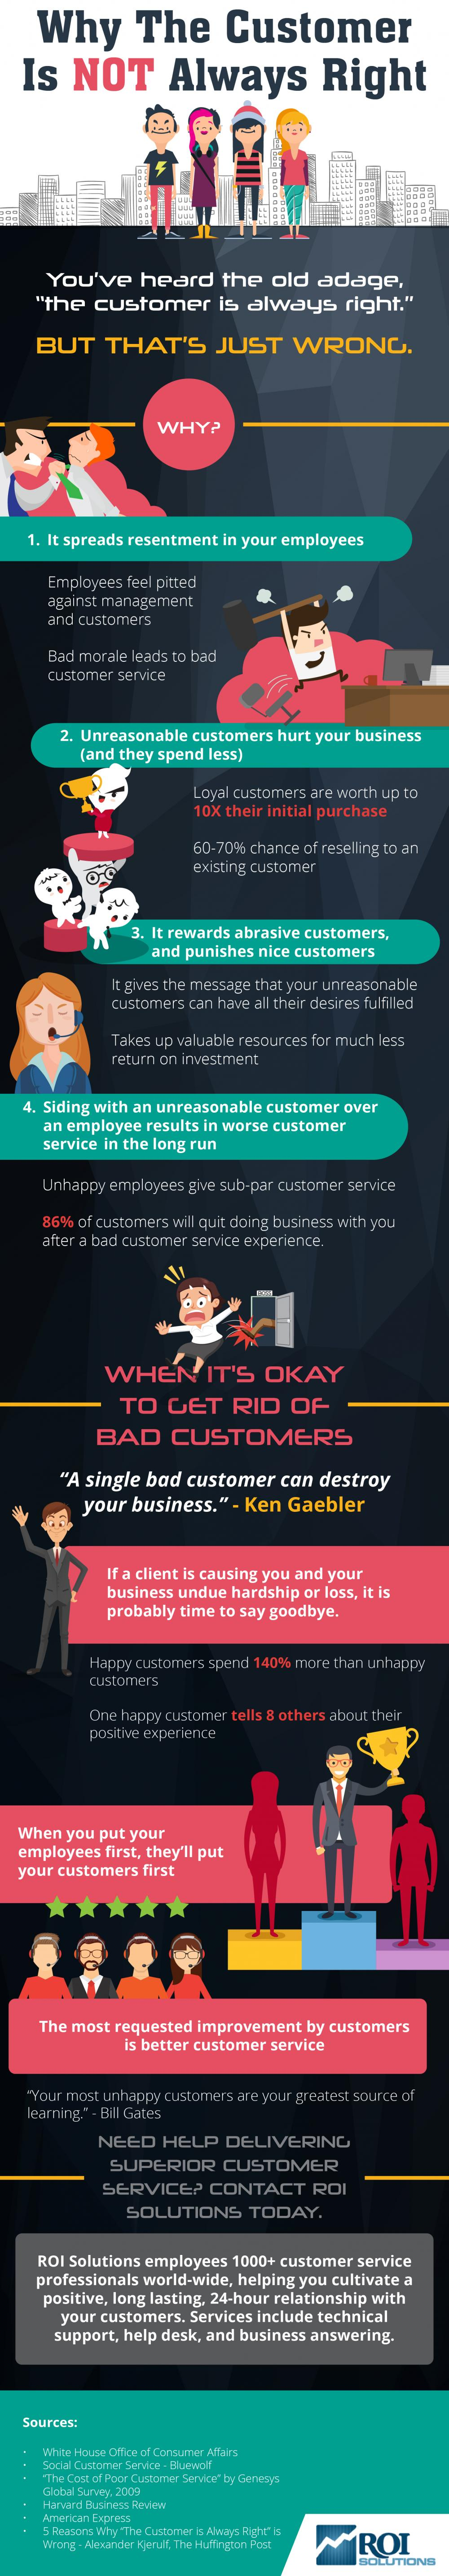 Why the customer isn't always right